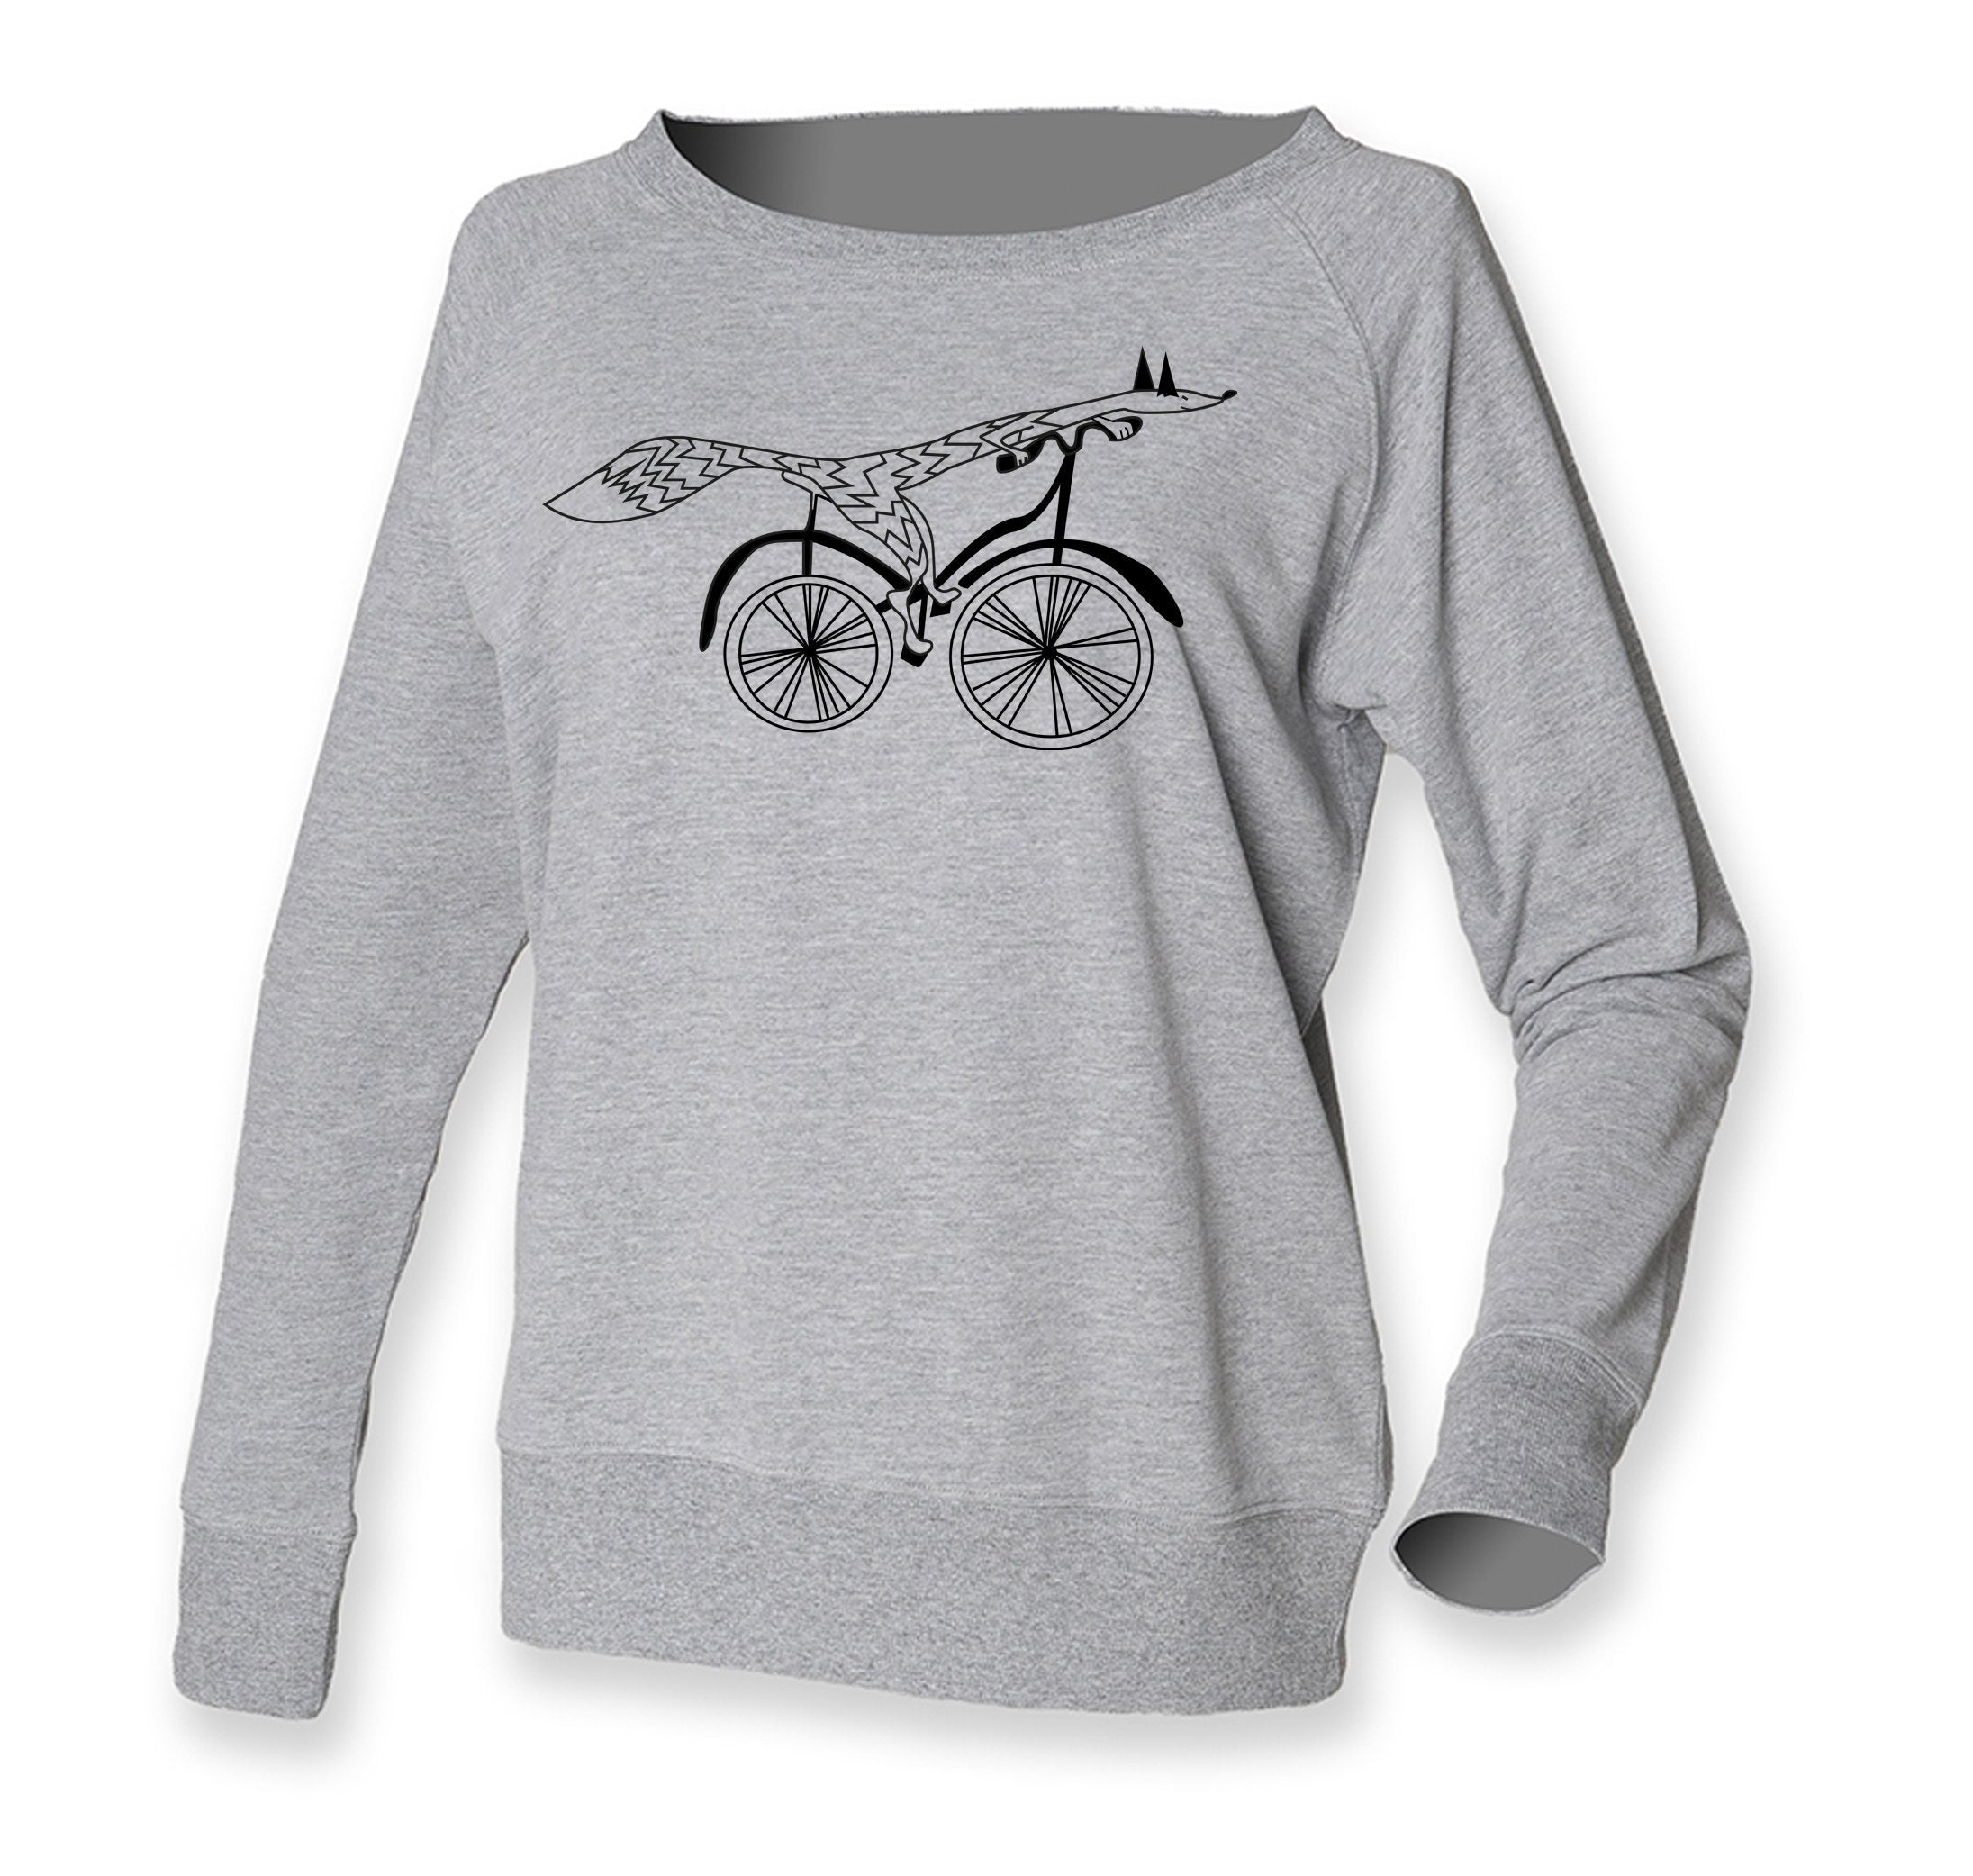 Women Top - Grey Fox On A Bike Jumper